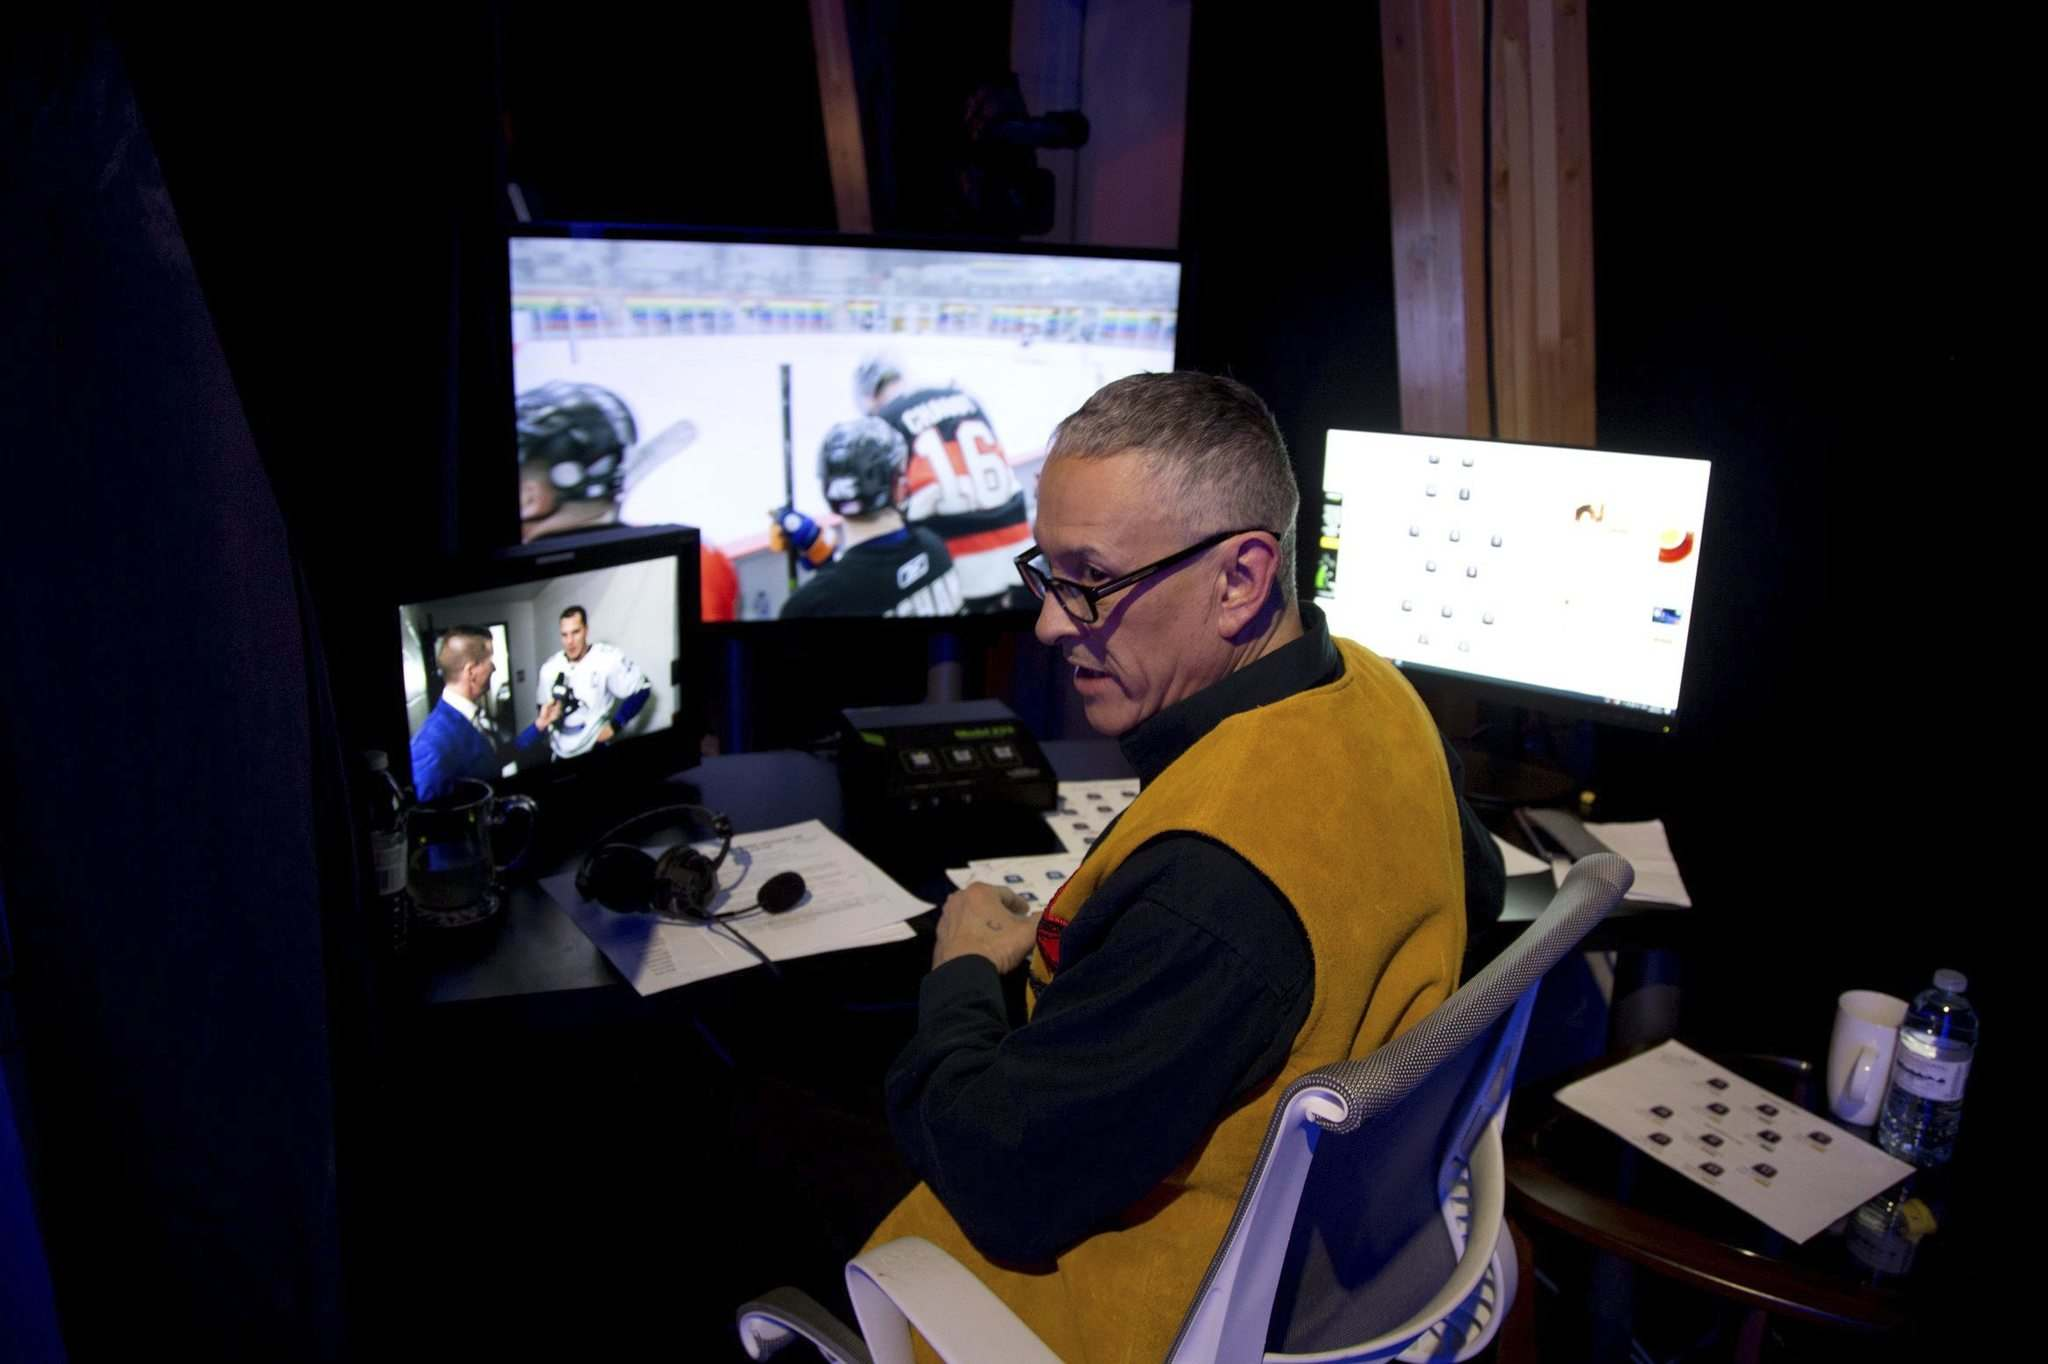 MELISSA MARTIN / WINNIPEG FREE PRESS</p><p>Clarence Iron always dreamed of play-by-play announcing, but never imagined it would be in Cree.</p>